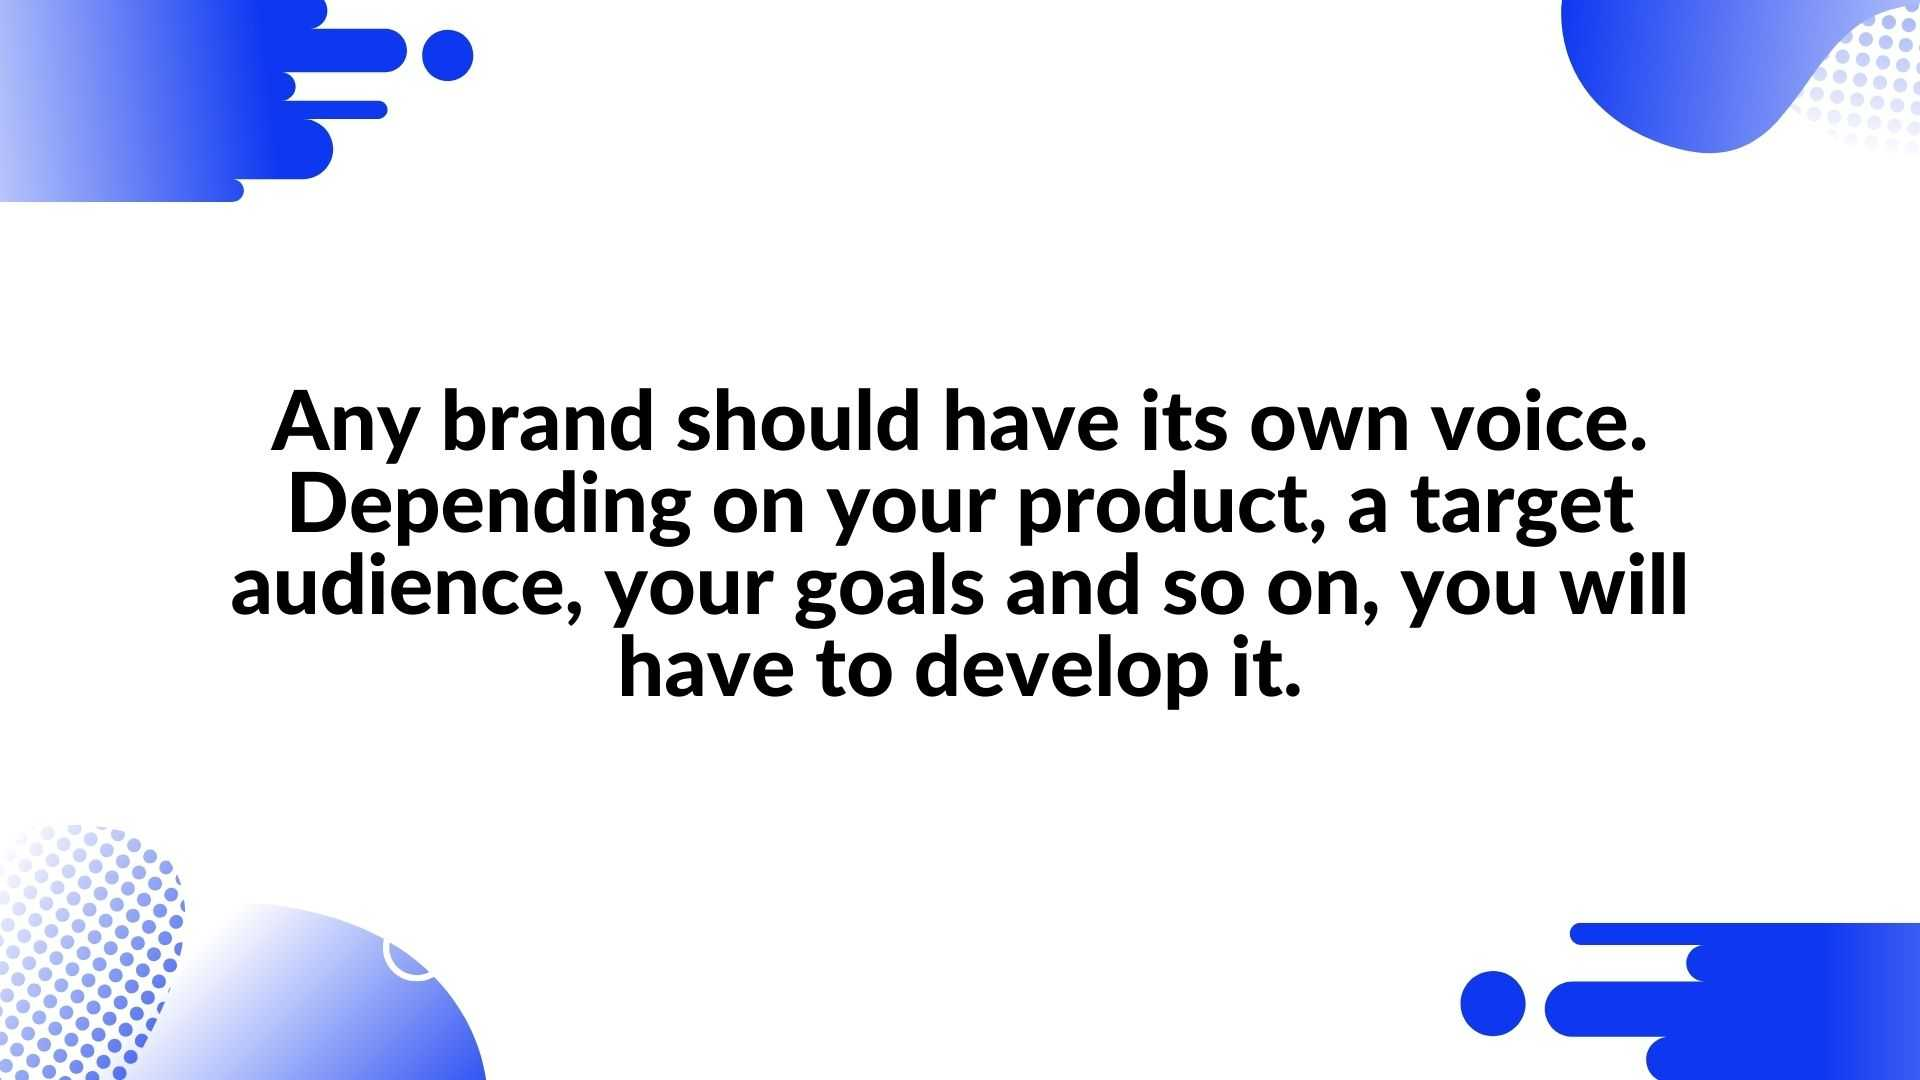 Every brand must have its own voice. Modern marketing for your brand